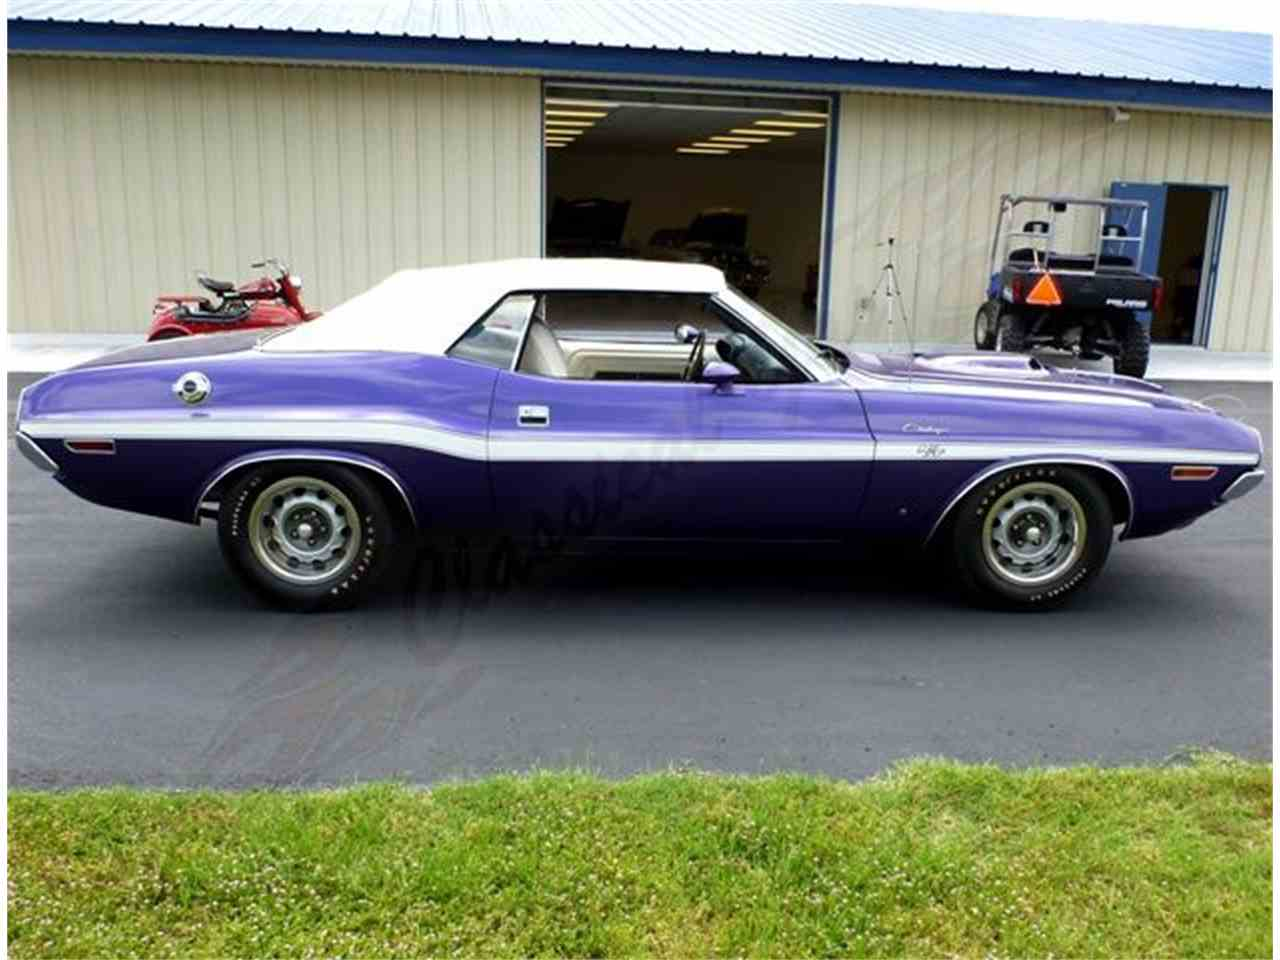 Large Picture of 1970 Dodge CHALLENGER CONVERTIBLE R/T - $189,500.00 - BVHV